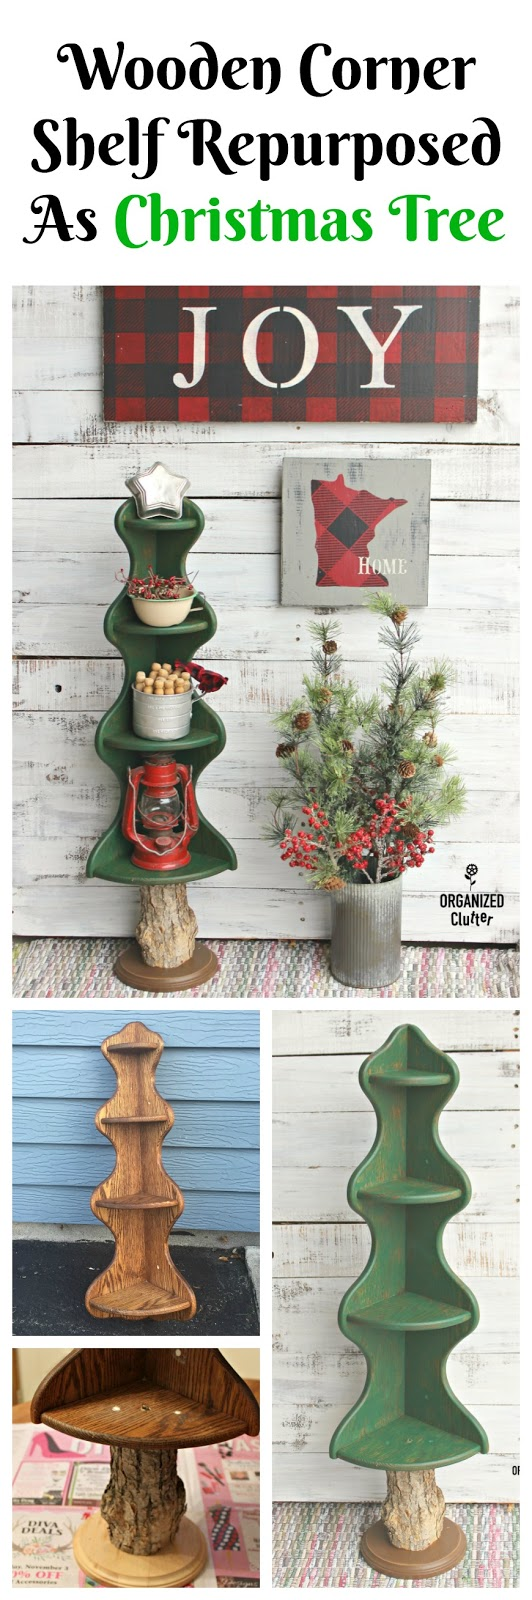 Wooden Corner Shelf Re Purposed As A Christmas Tree